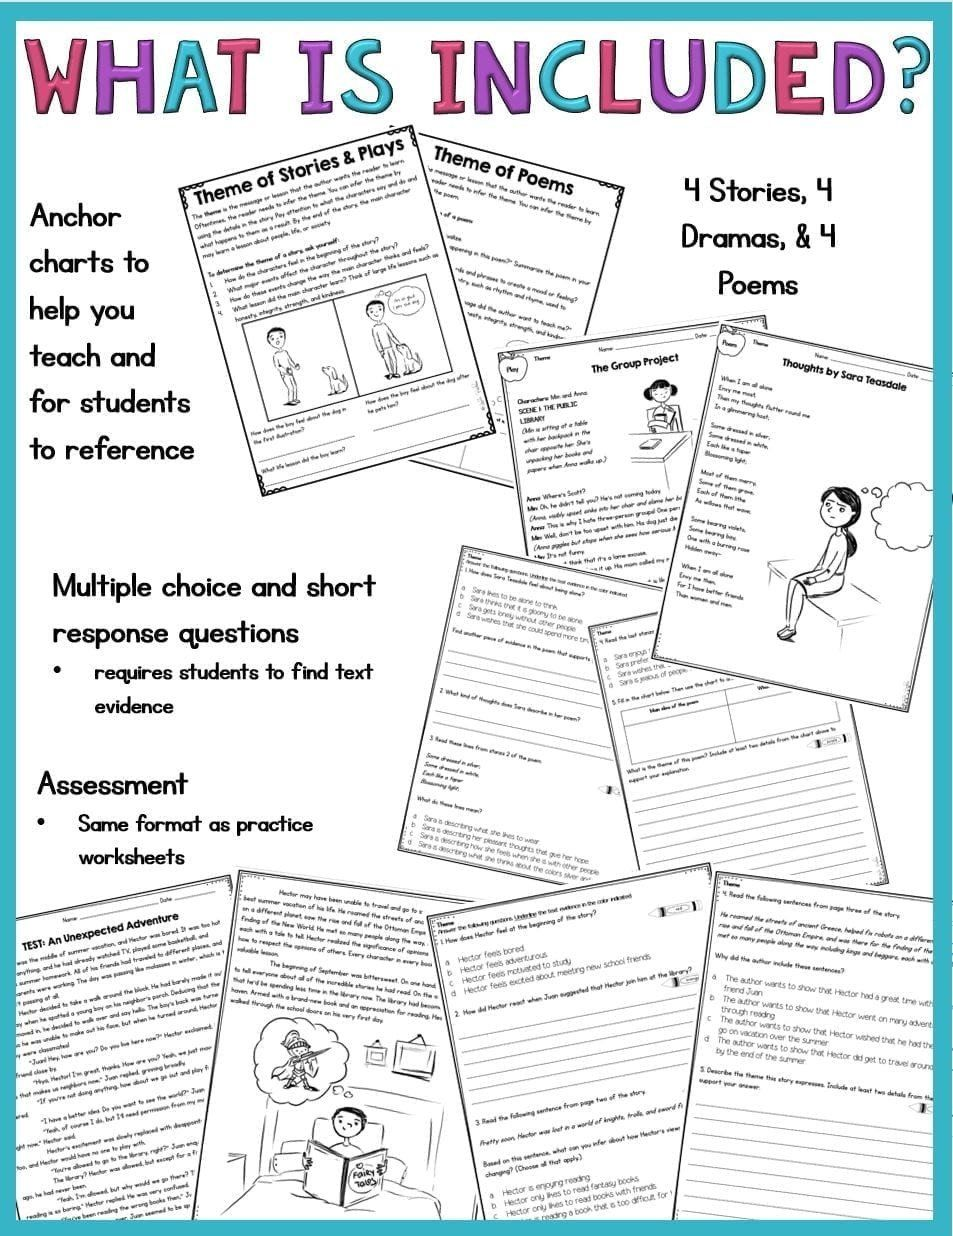 Theme Worksheet 4th Grade theme In Stories Plays and Poems 4th Grade Rl 4 2  and 5th Grade Rl 5 2   Text evidence [ 1236 x 953 Pixel ]